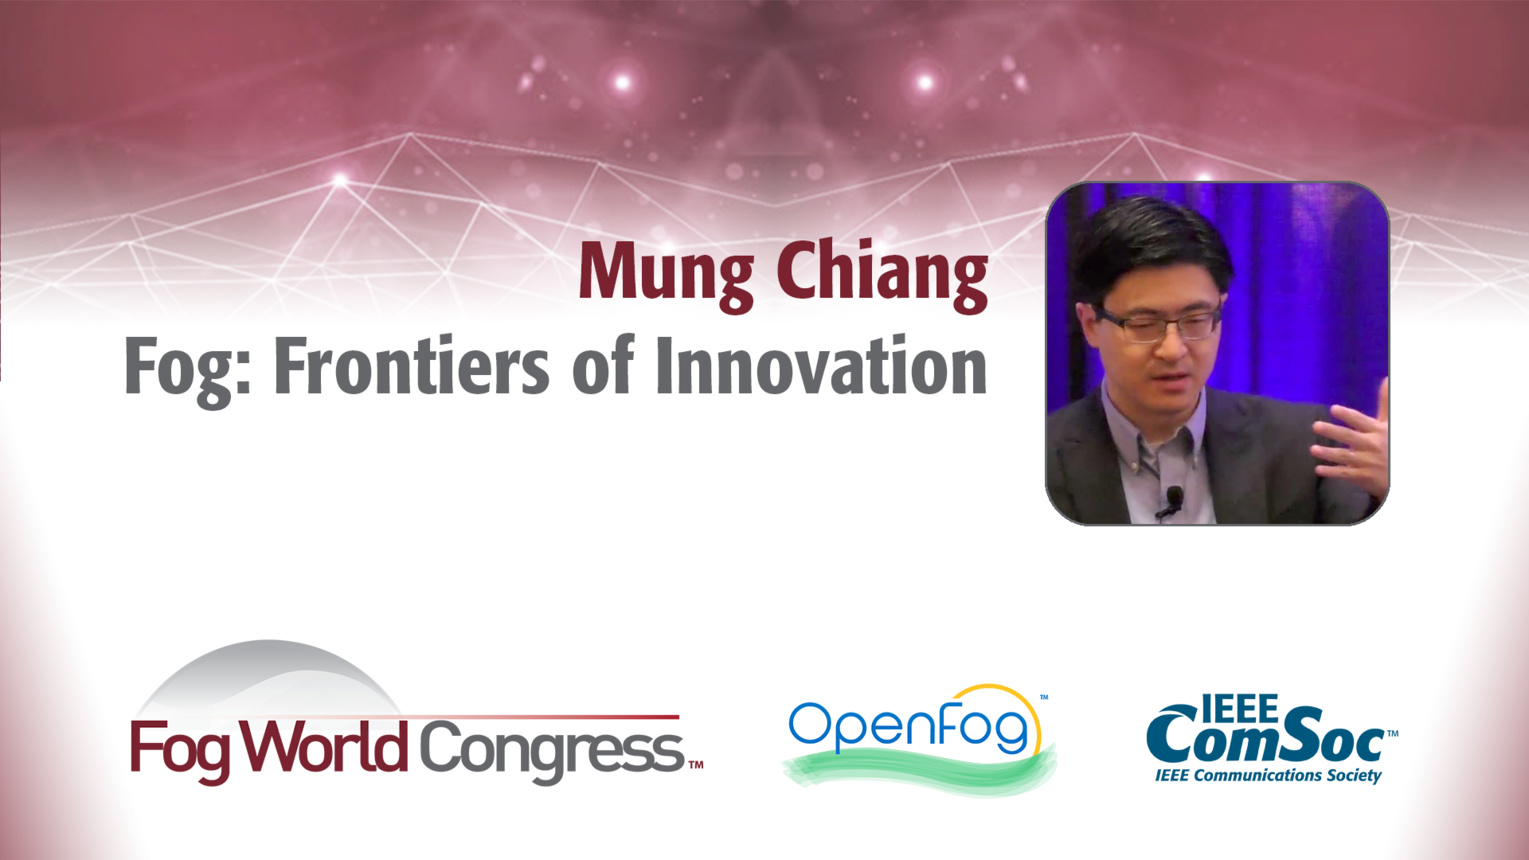 Fog: Frontiers of Innovation - Mung Chiang, Fog World Congress 2017